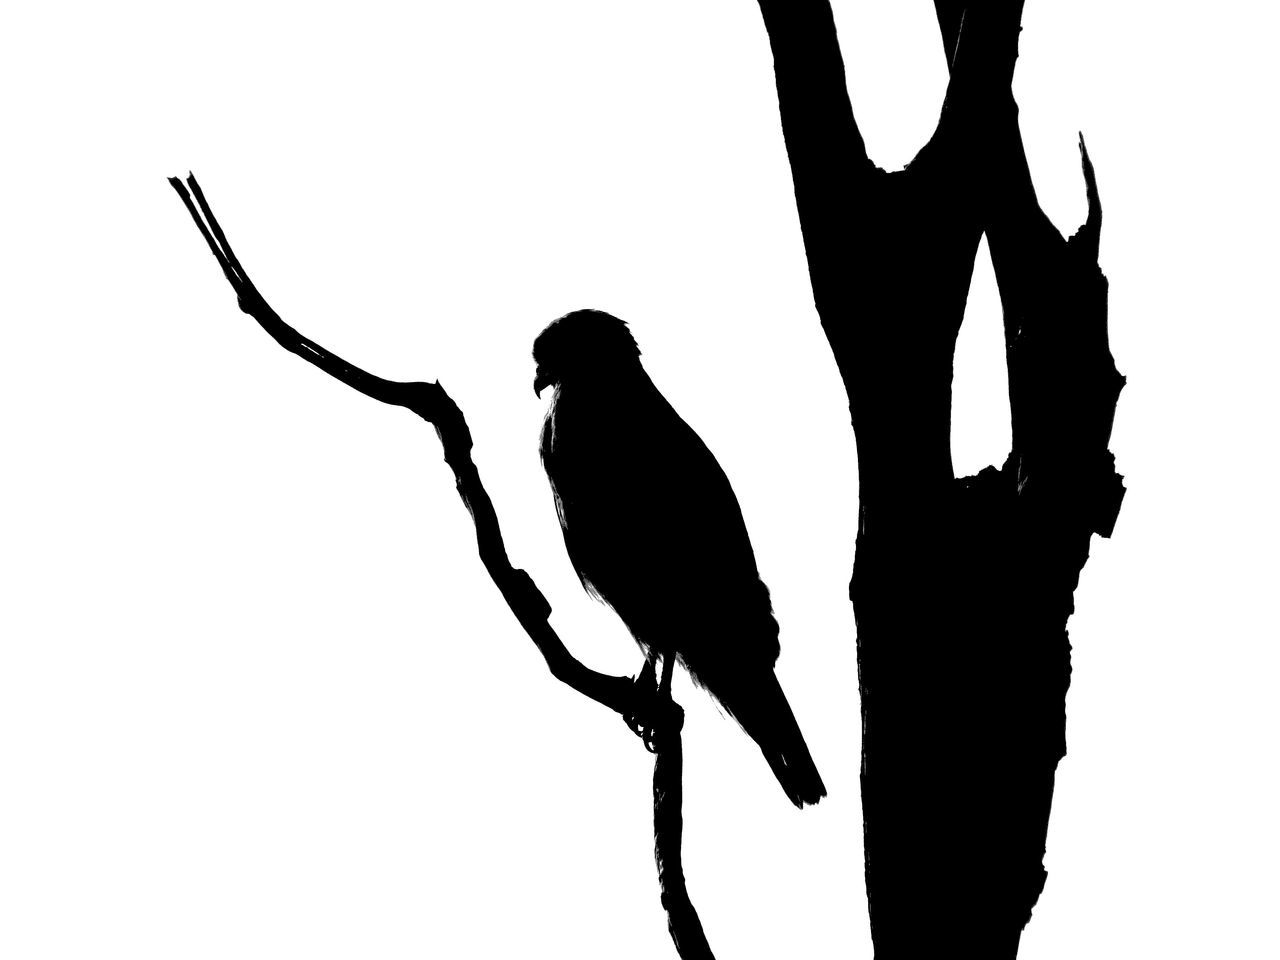 bird, animal themes, silhouette, animals in the wild, one animal, animal wildlife, perching, low angle view, raven - bird, crow, no people, full length, clear sky, nature, day, outdoors